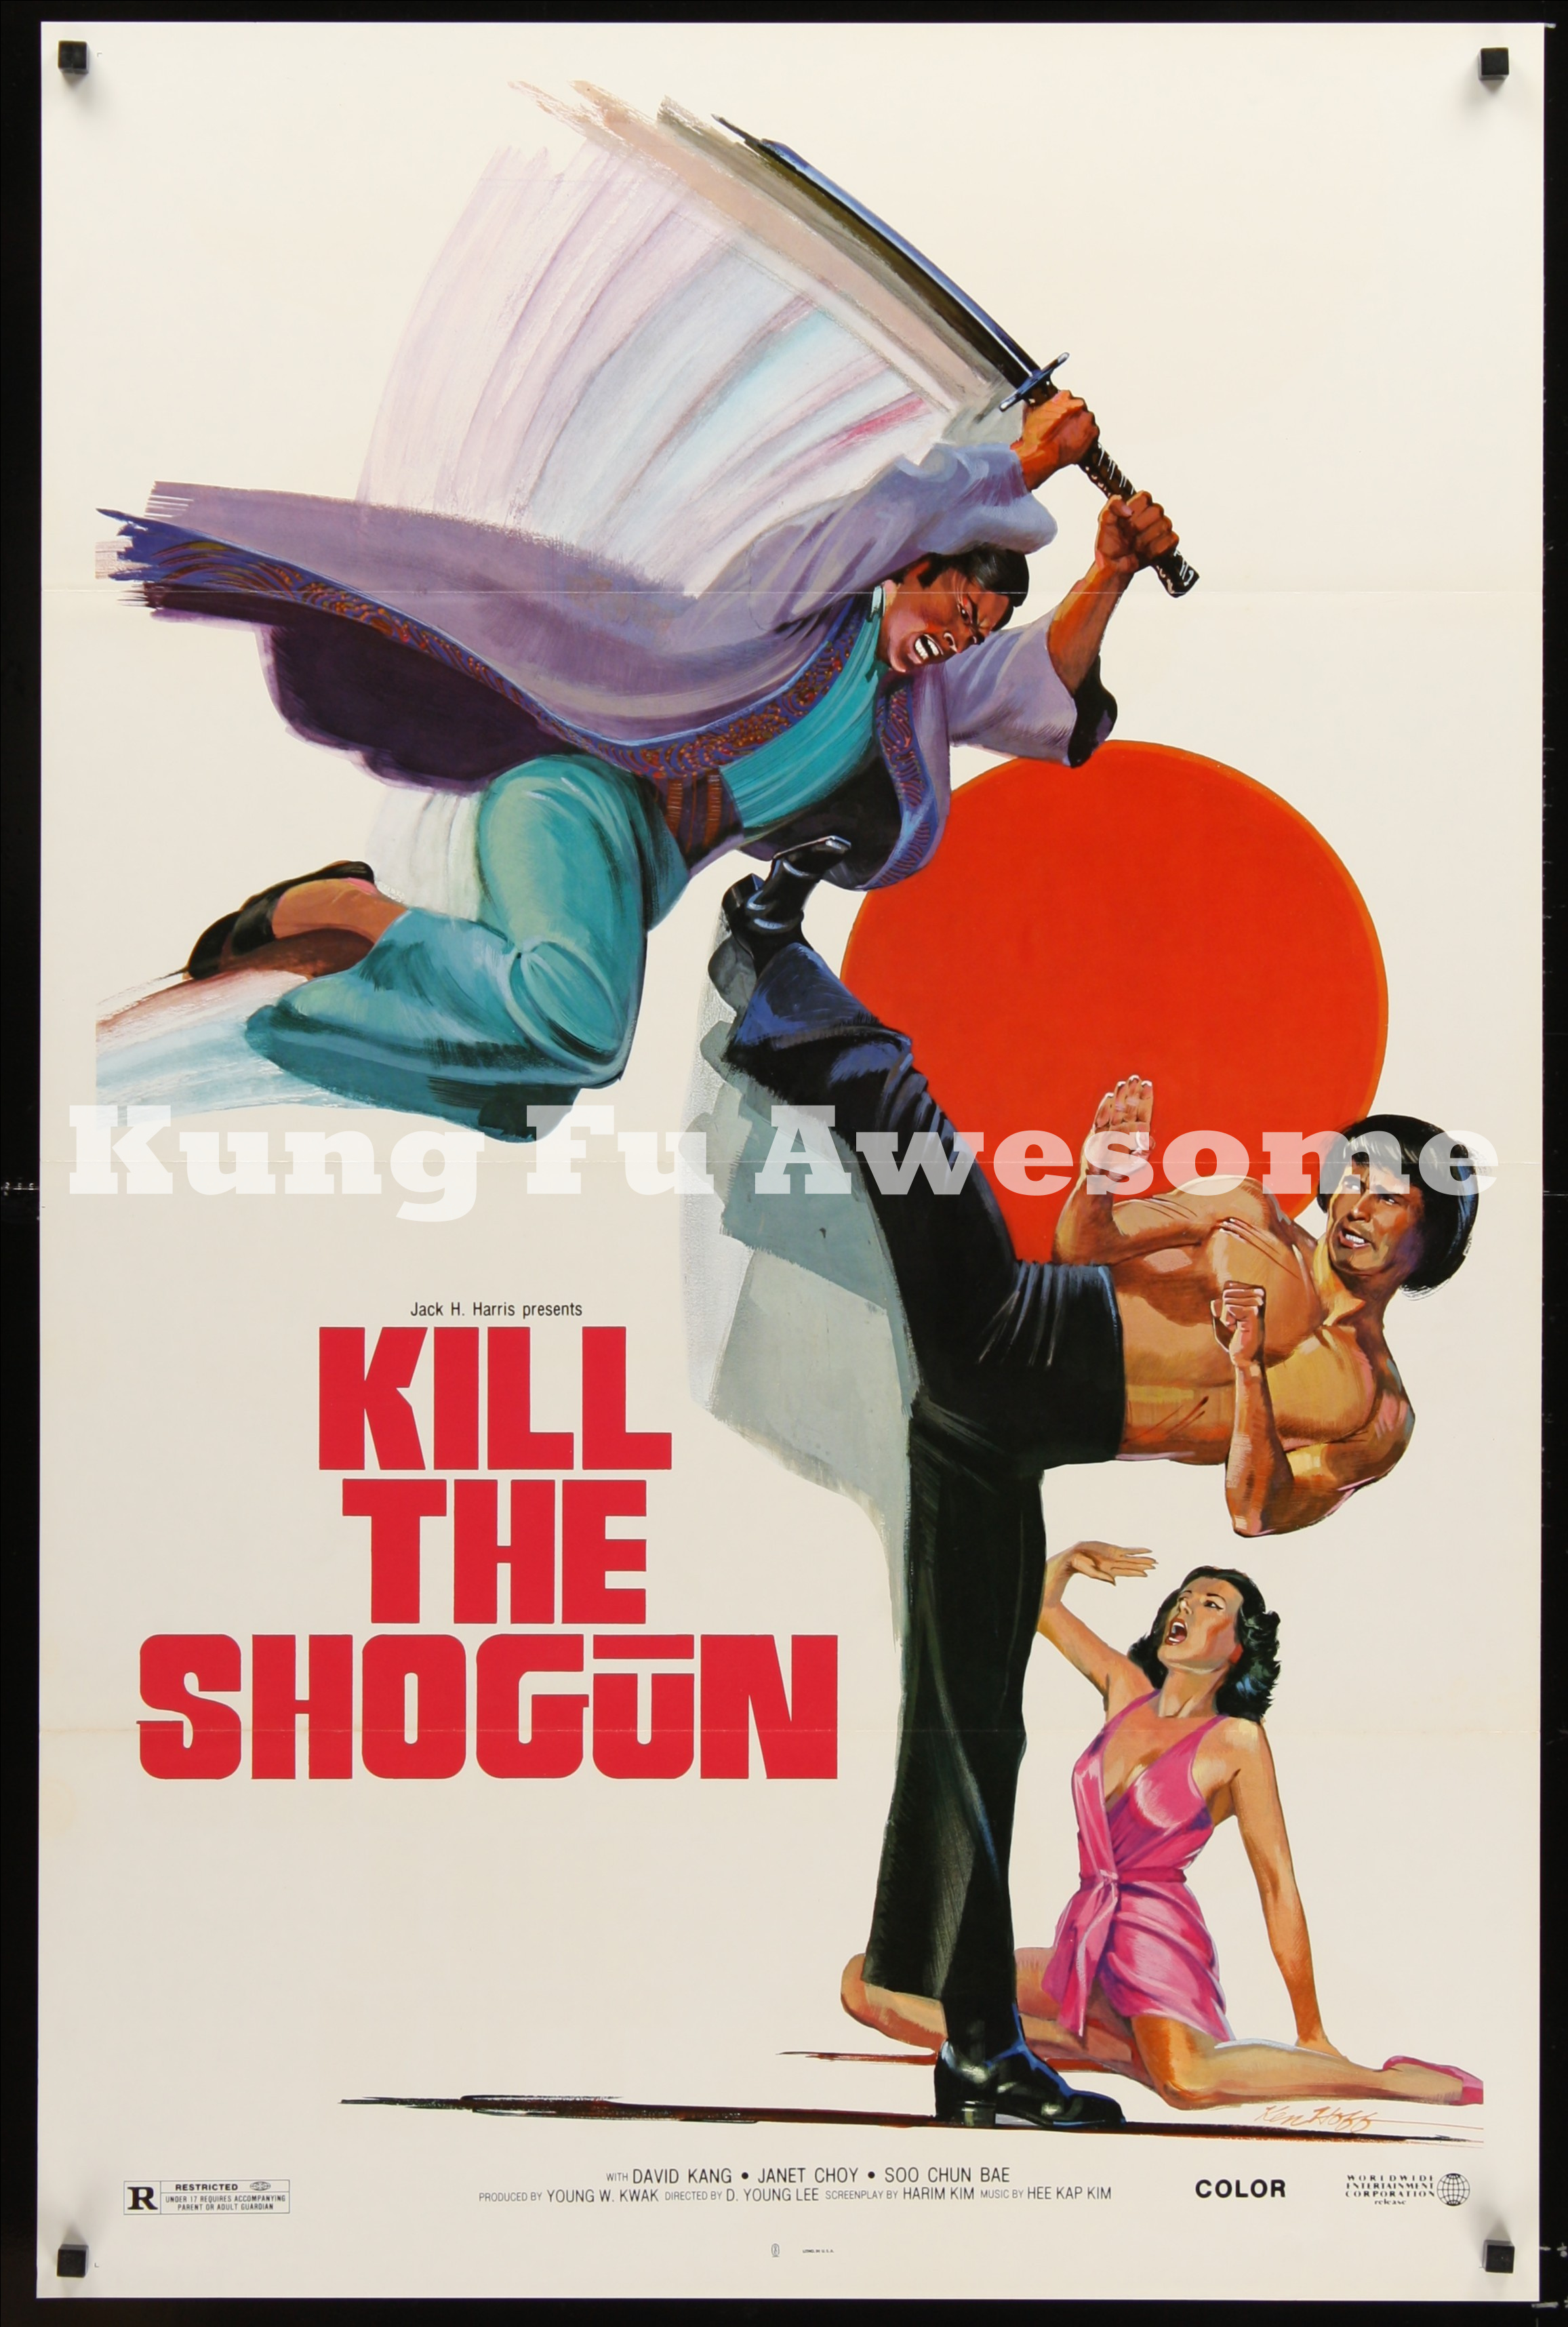 kill_the_shogun_NZ02851_L.jpg